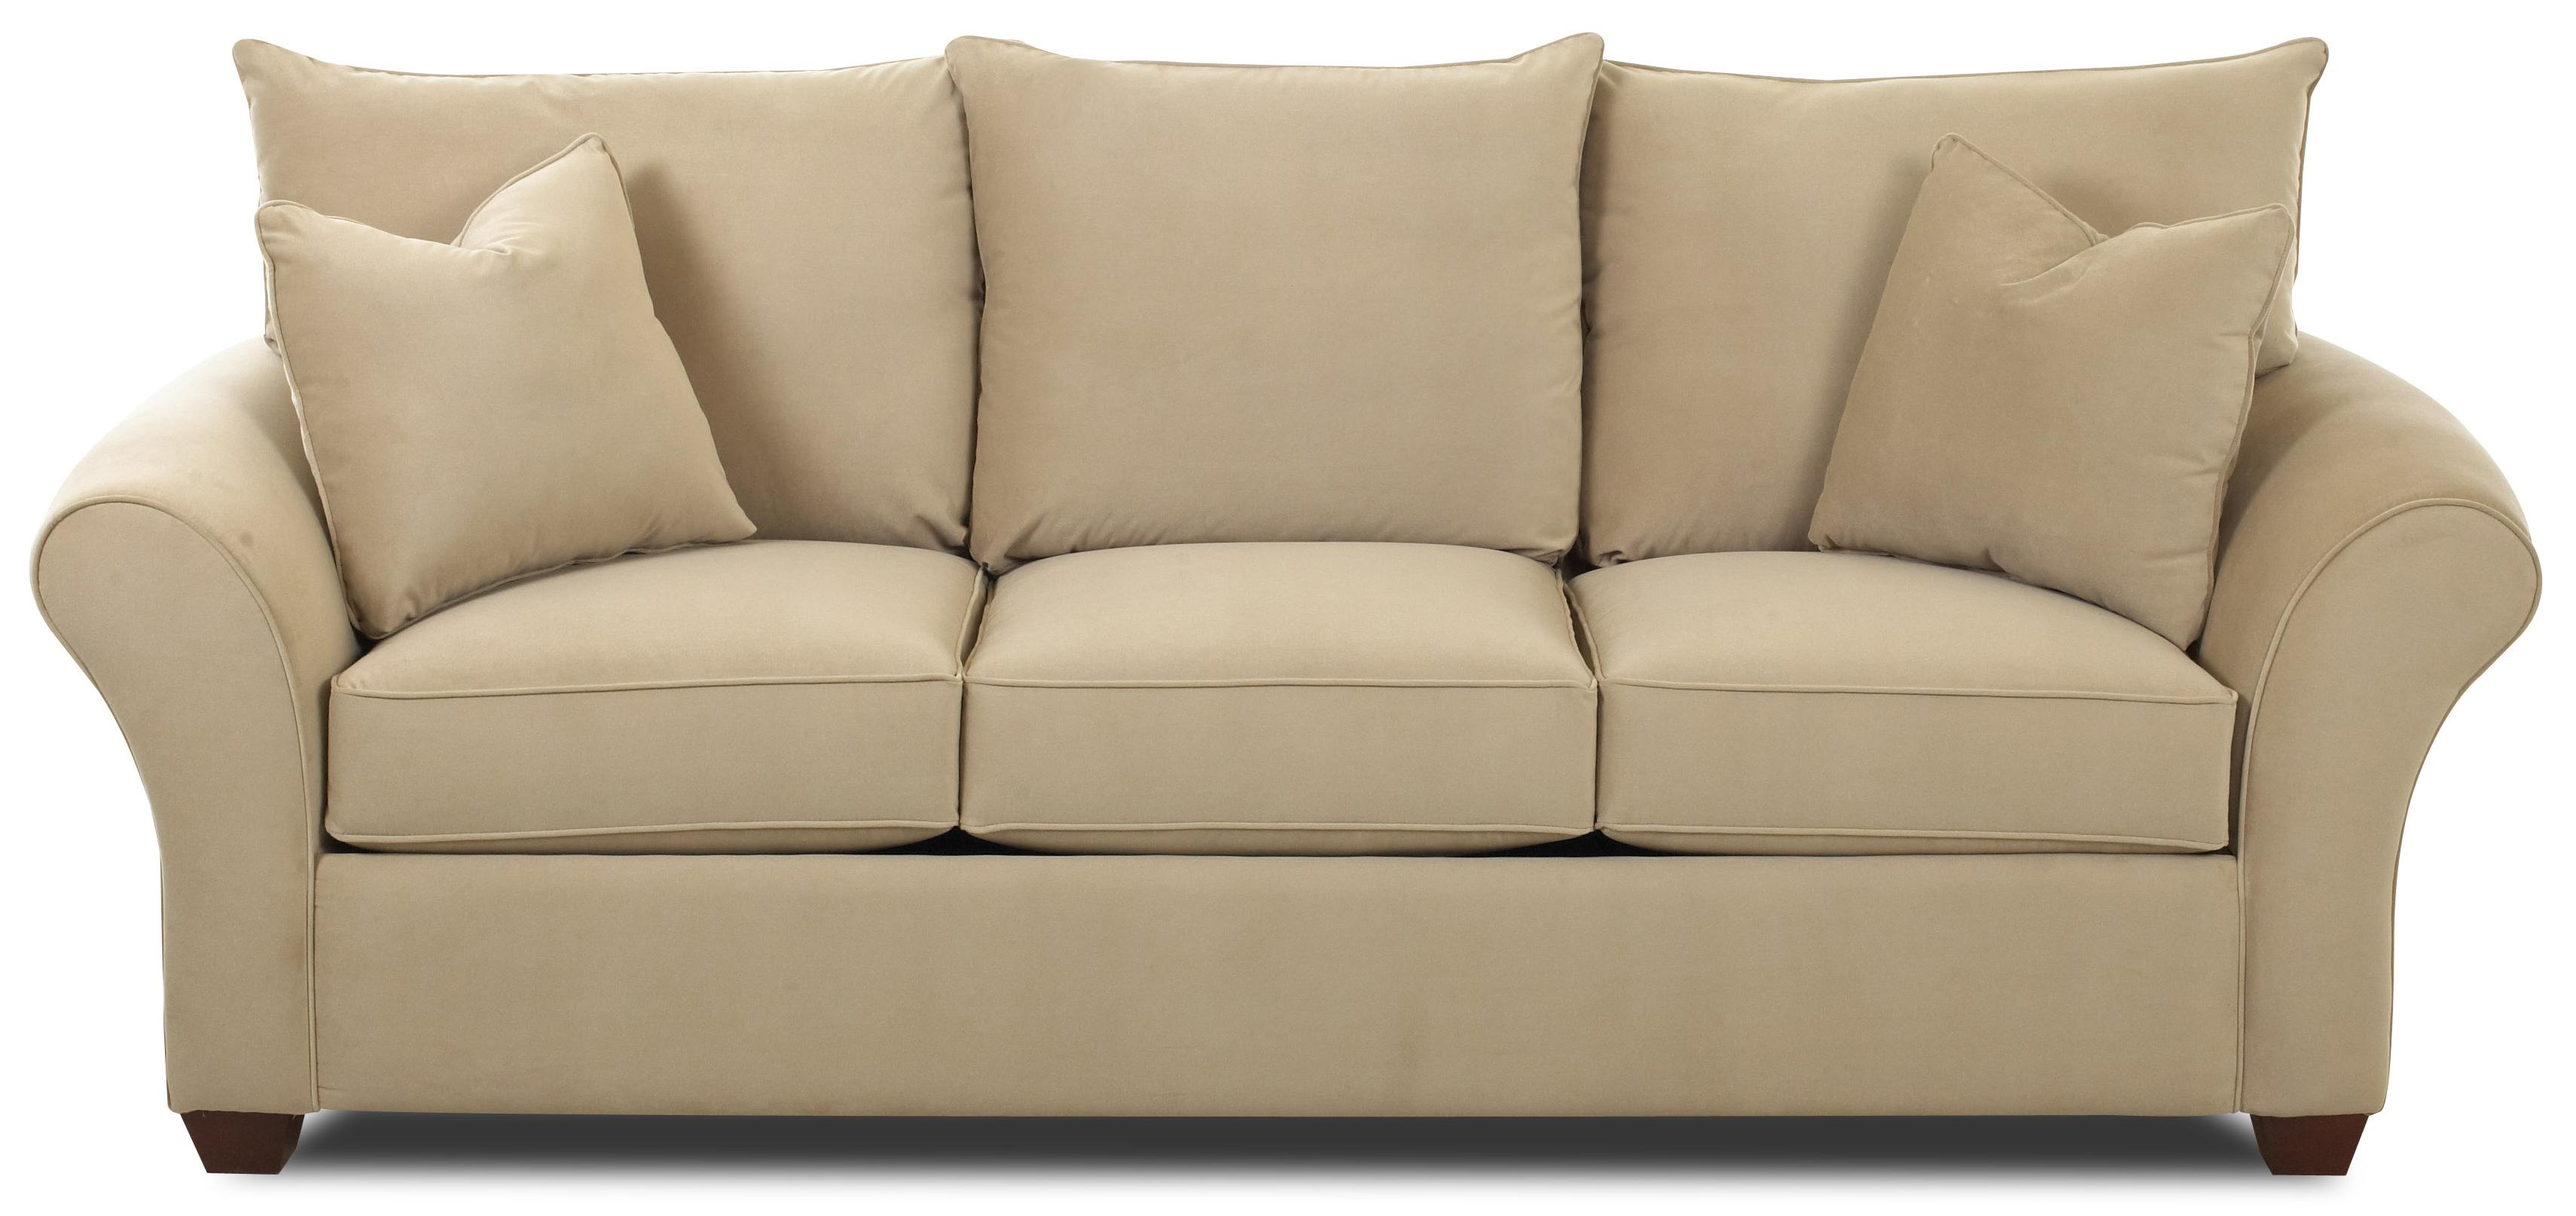 cream colored sofa pillows blue velvet chesterfield bed the most comfortable couch homesfeed